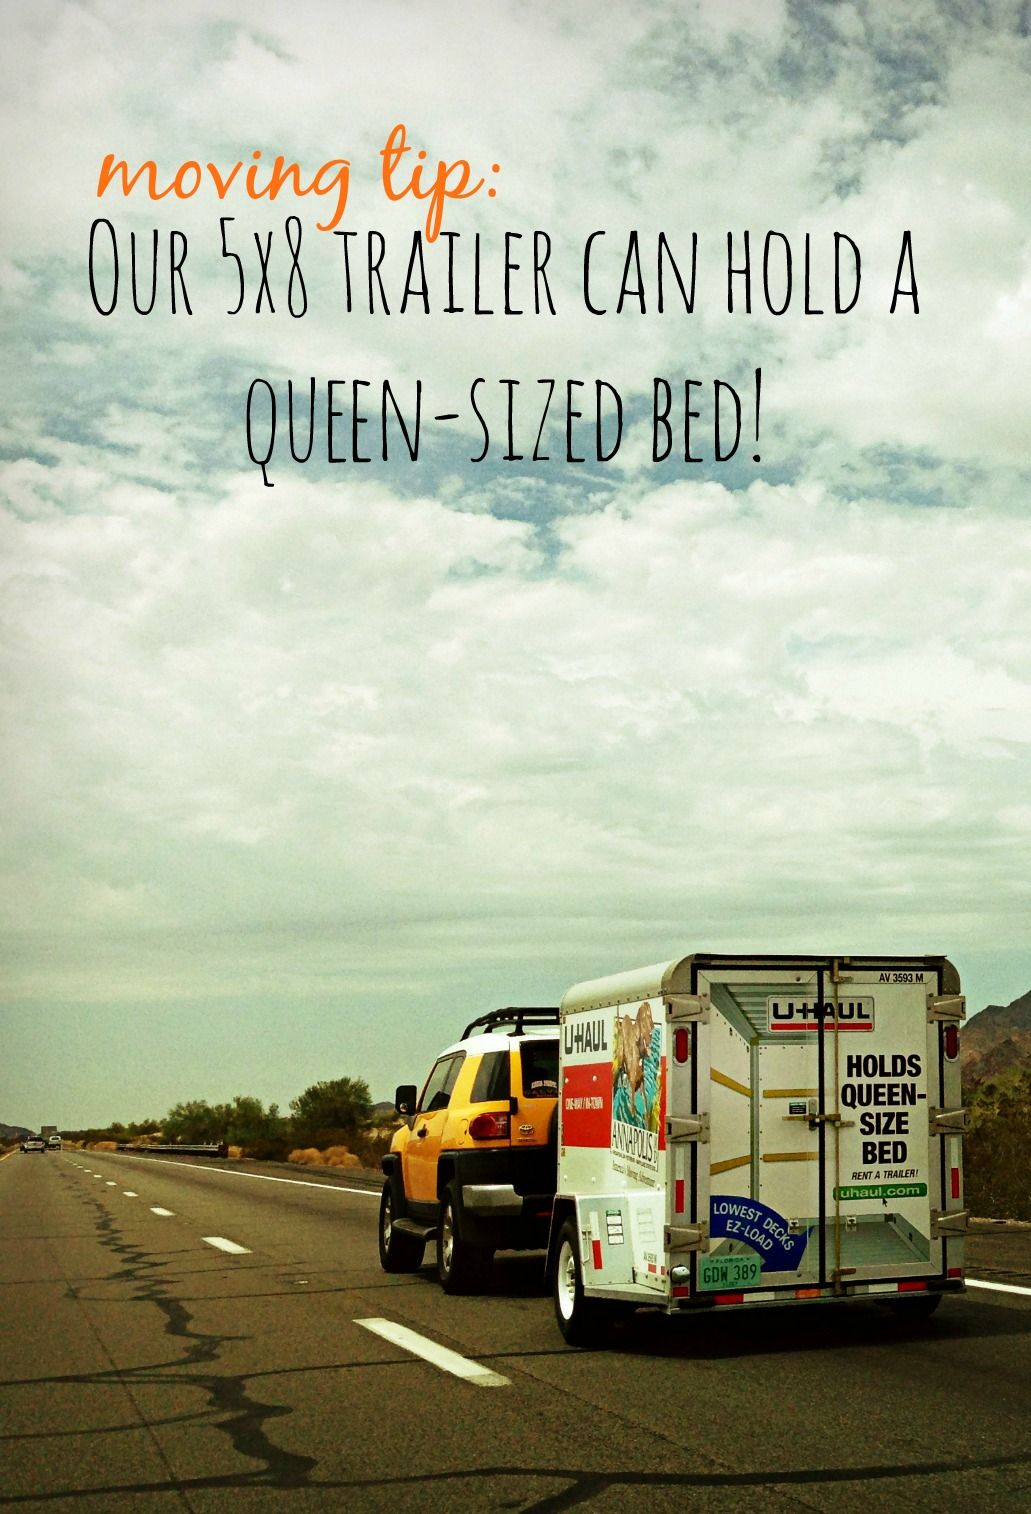 U Haul Trailer Sizes >> Did You Know That Our 5x8 Trailer Can Hold A Queen Sized Bed